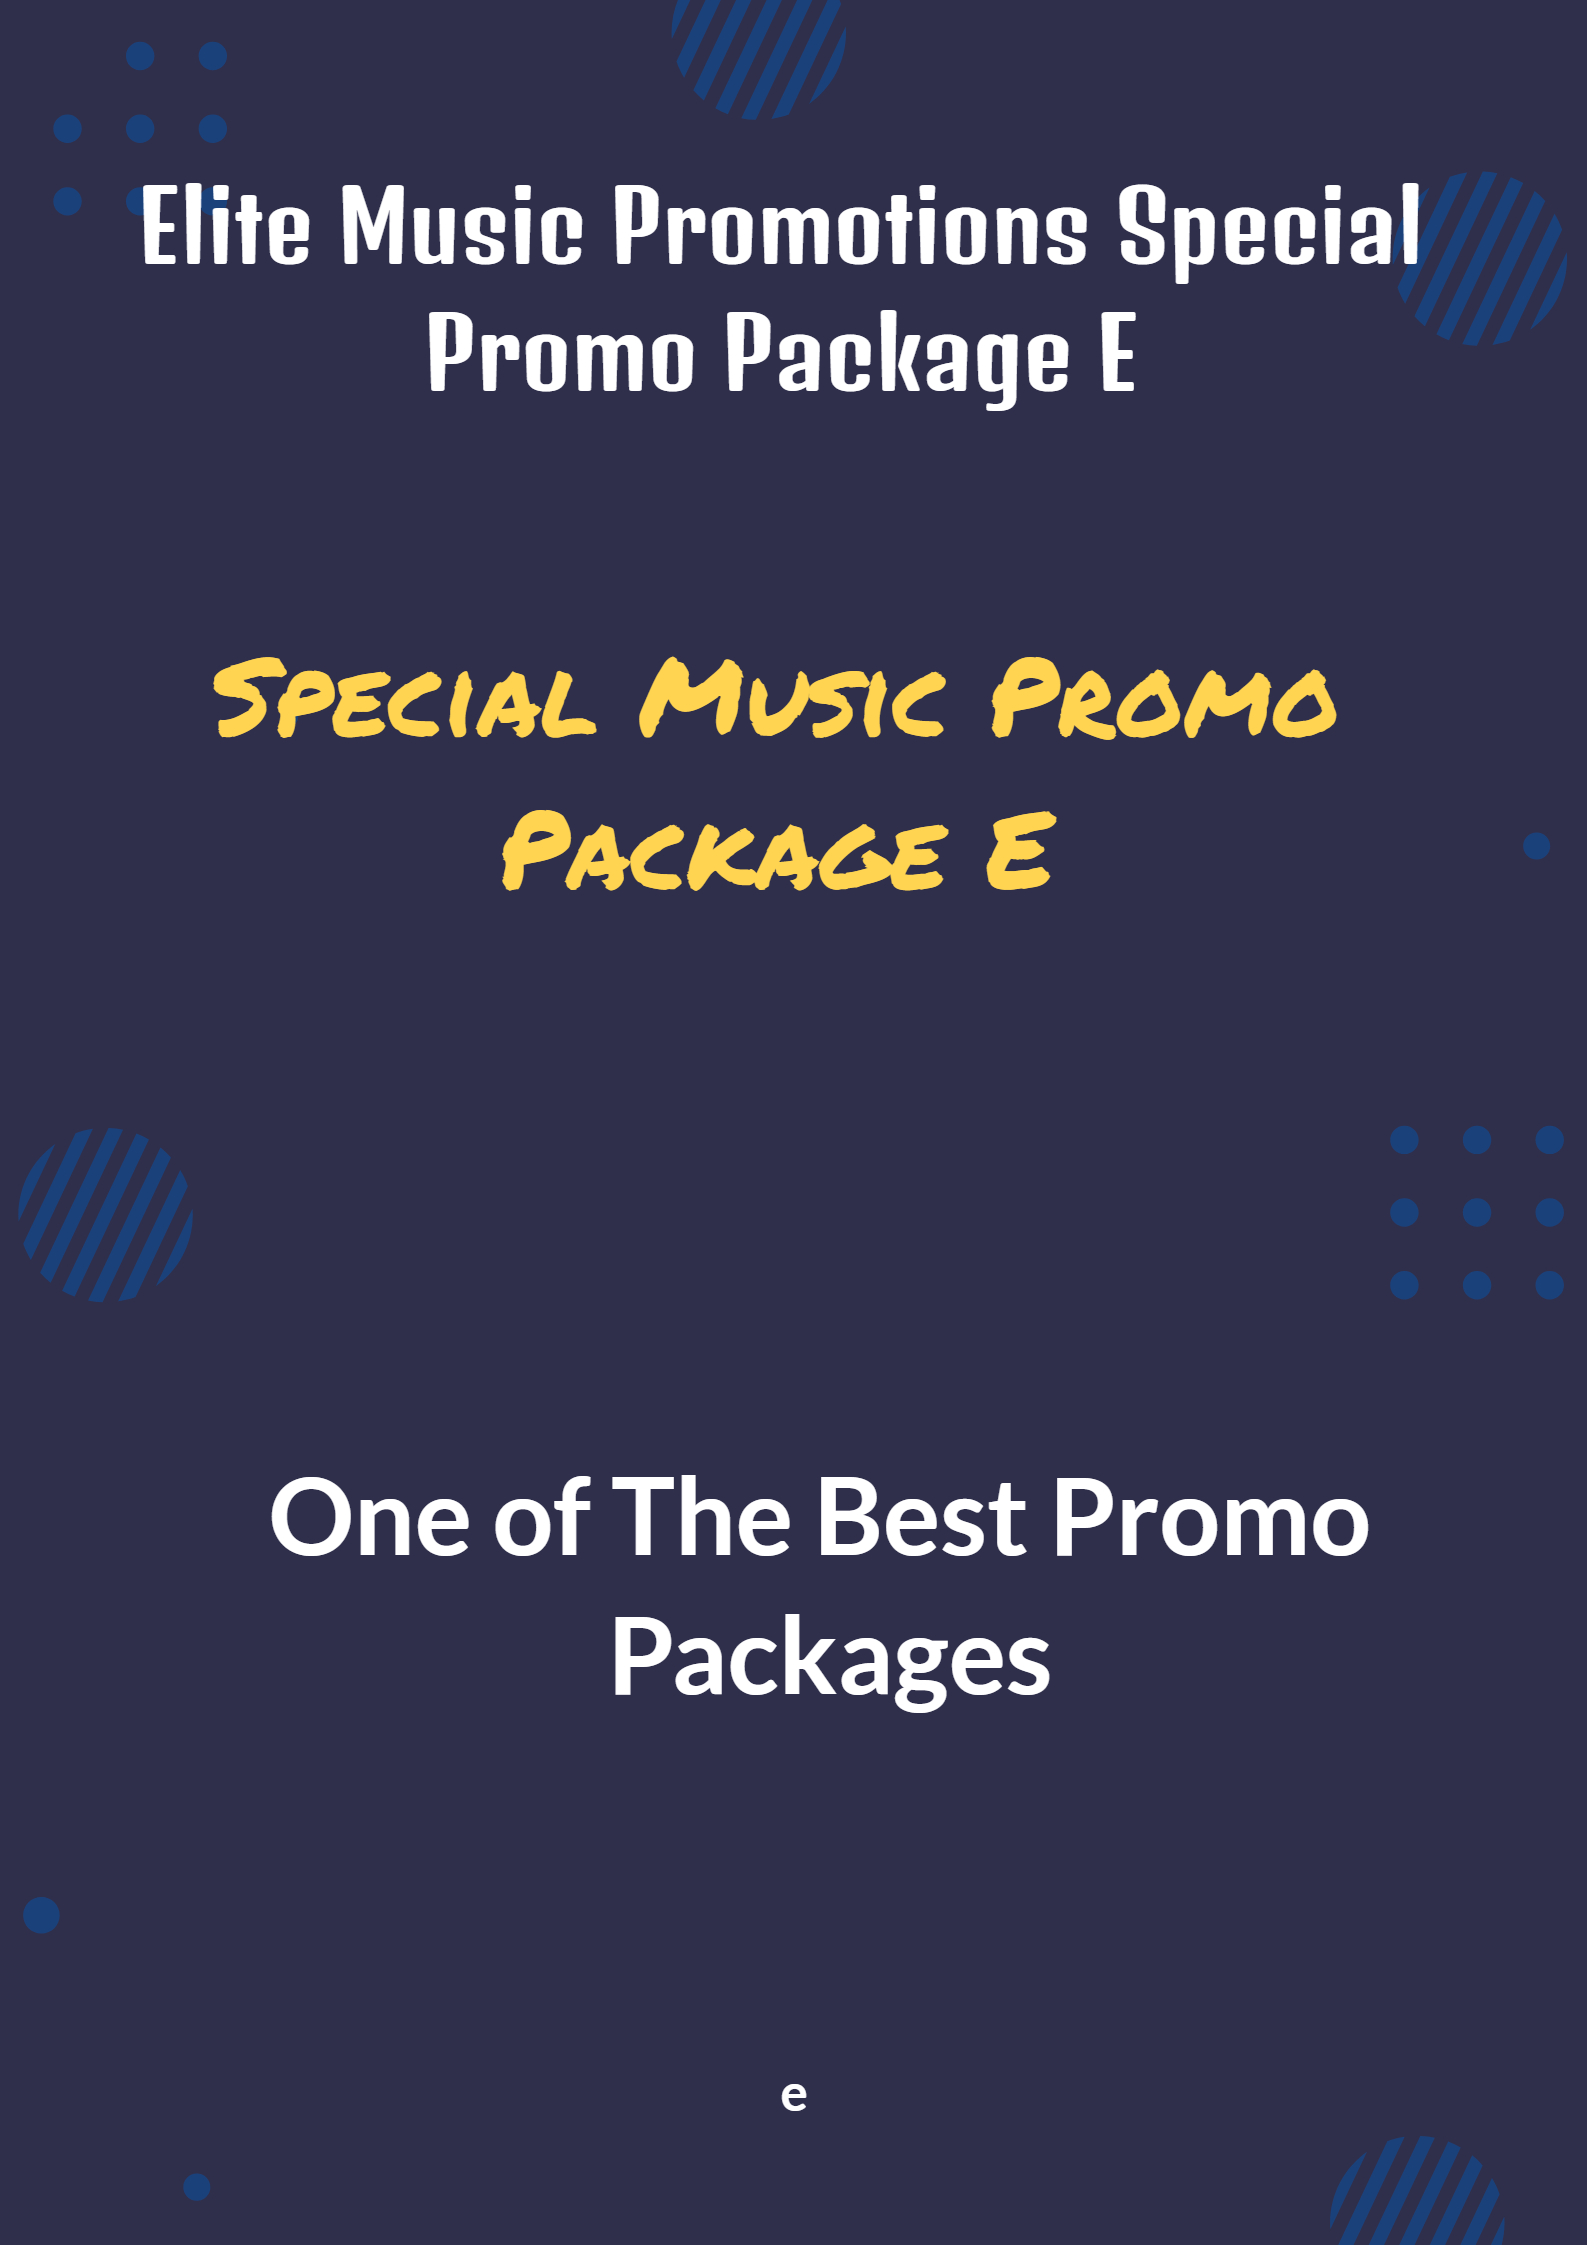 Special Promo Package E